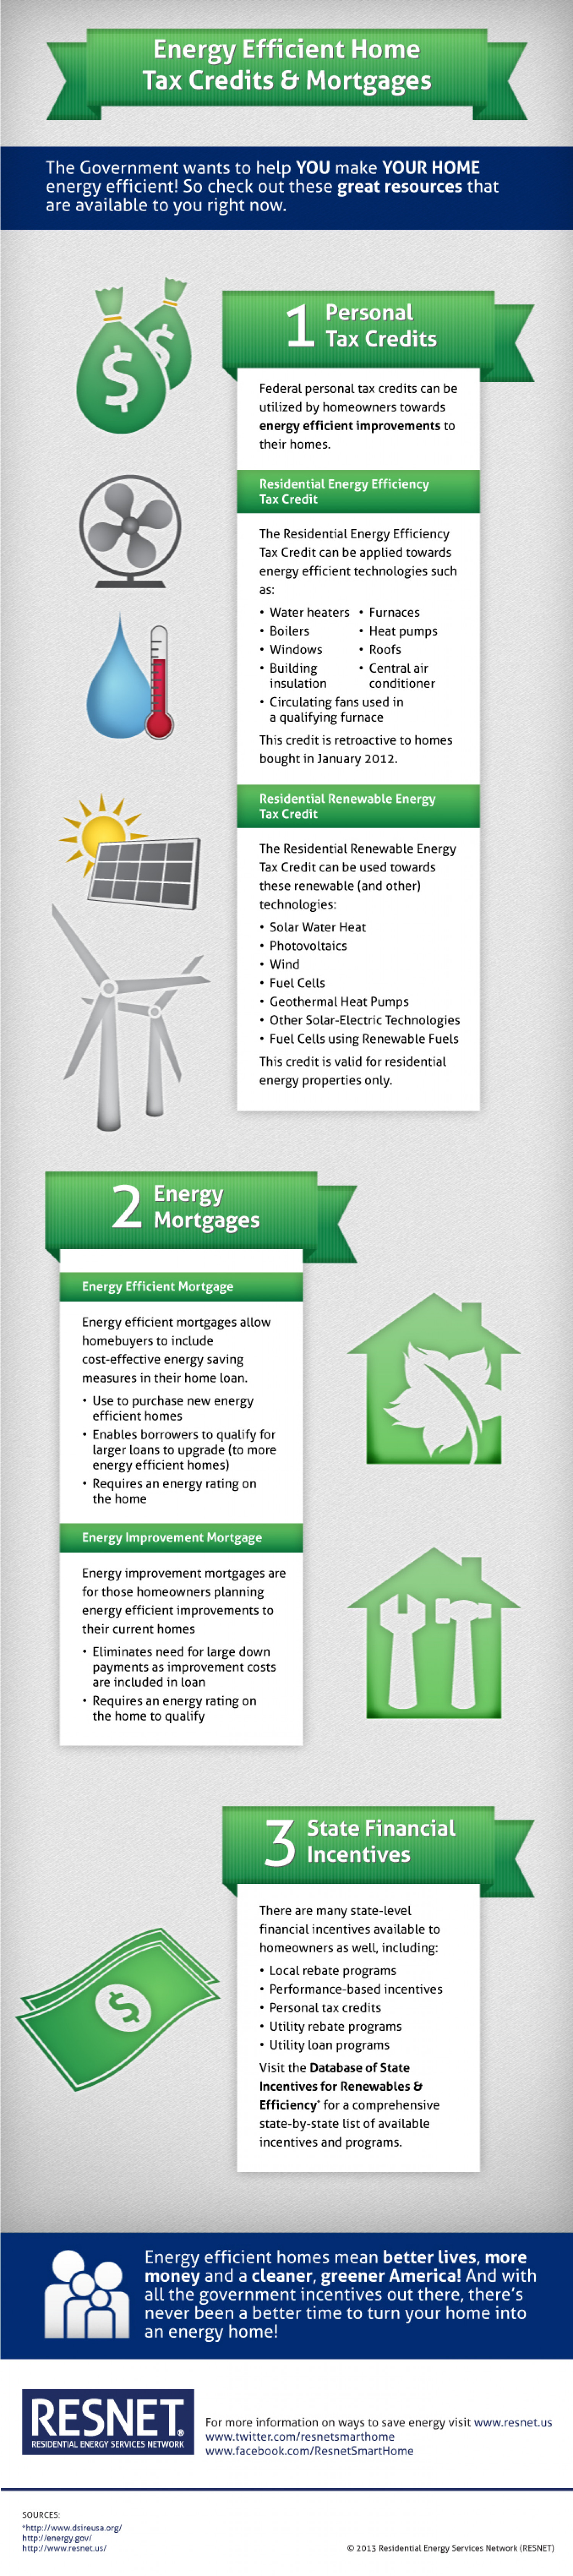 Energy Efficient Home Tax Credits & Mortgages Infographic